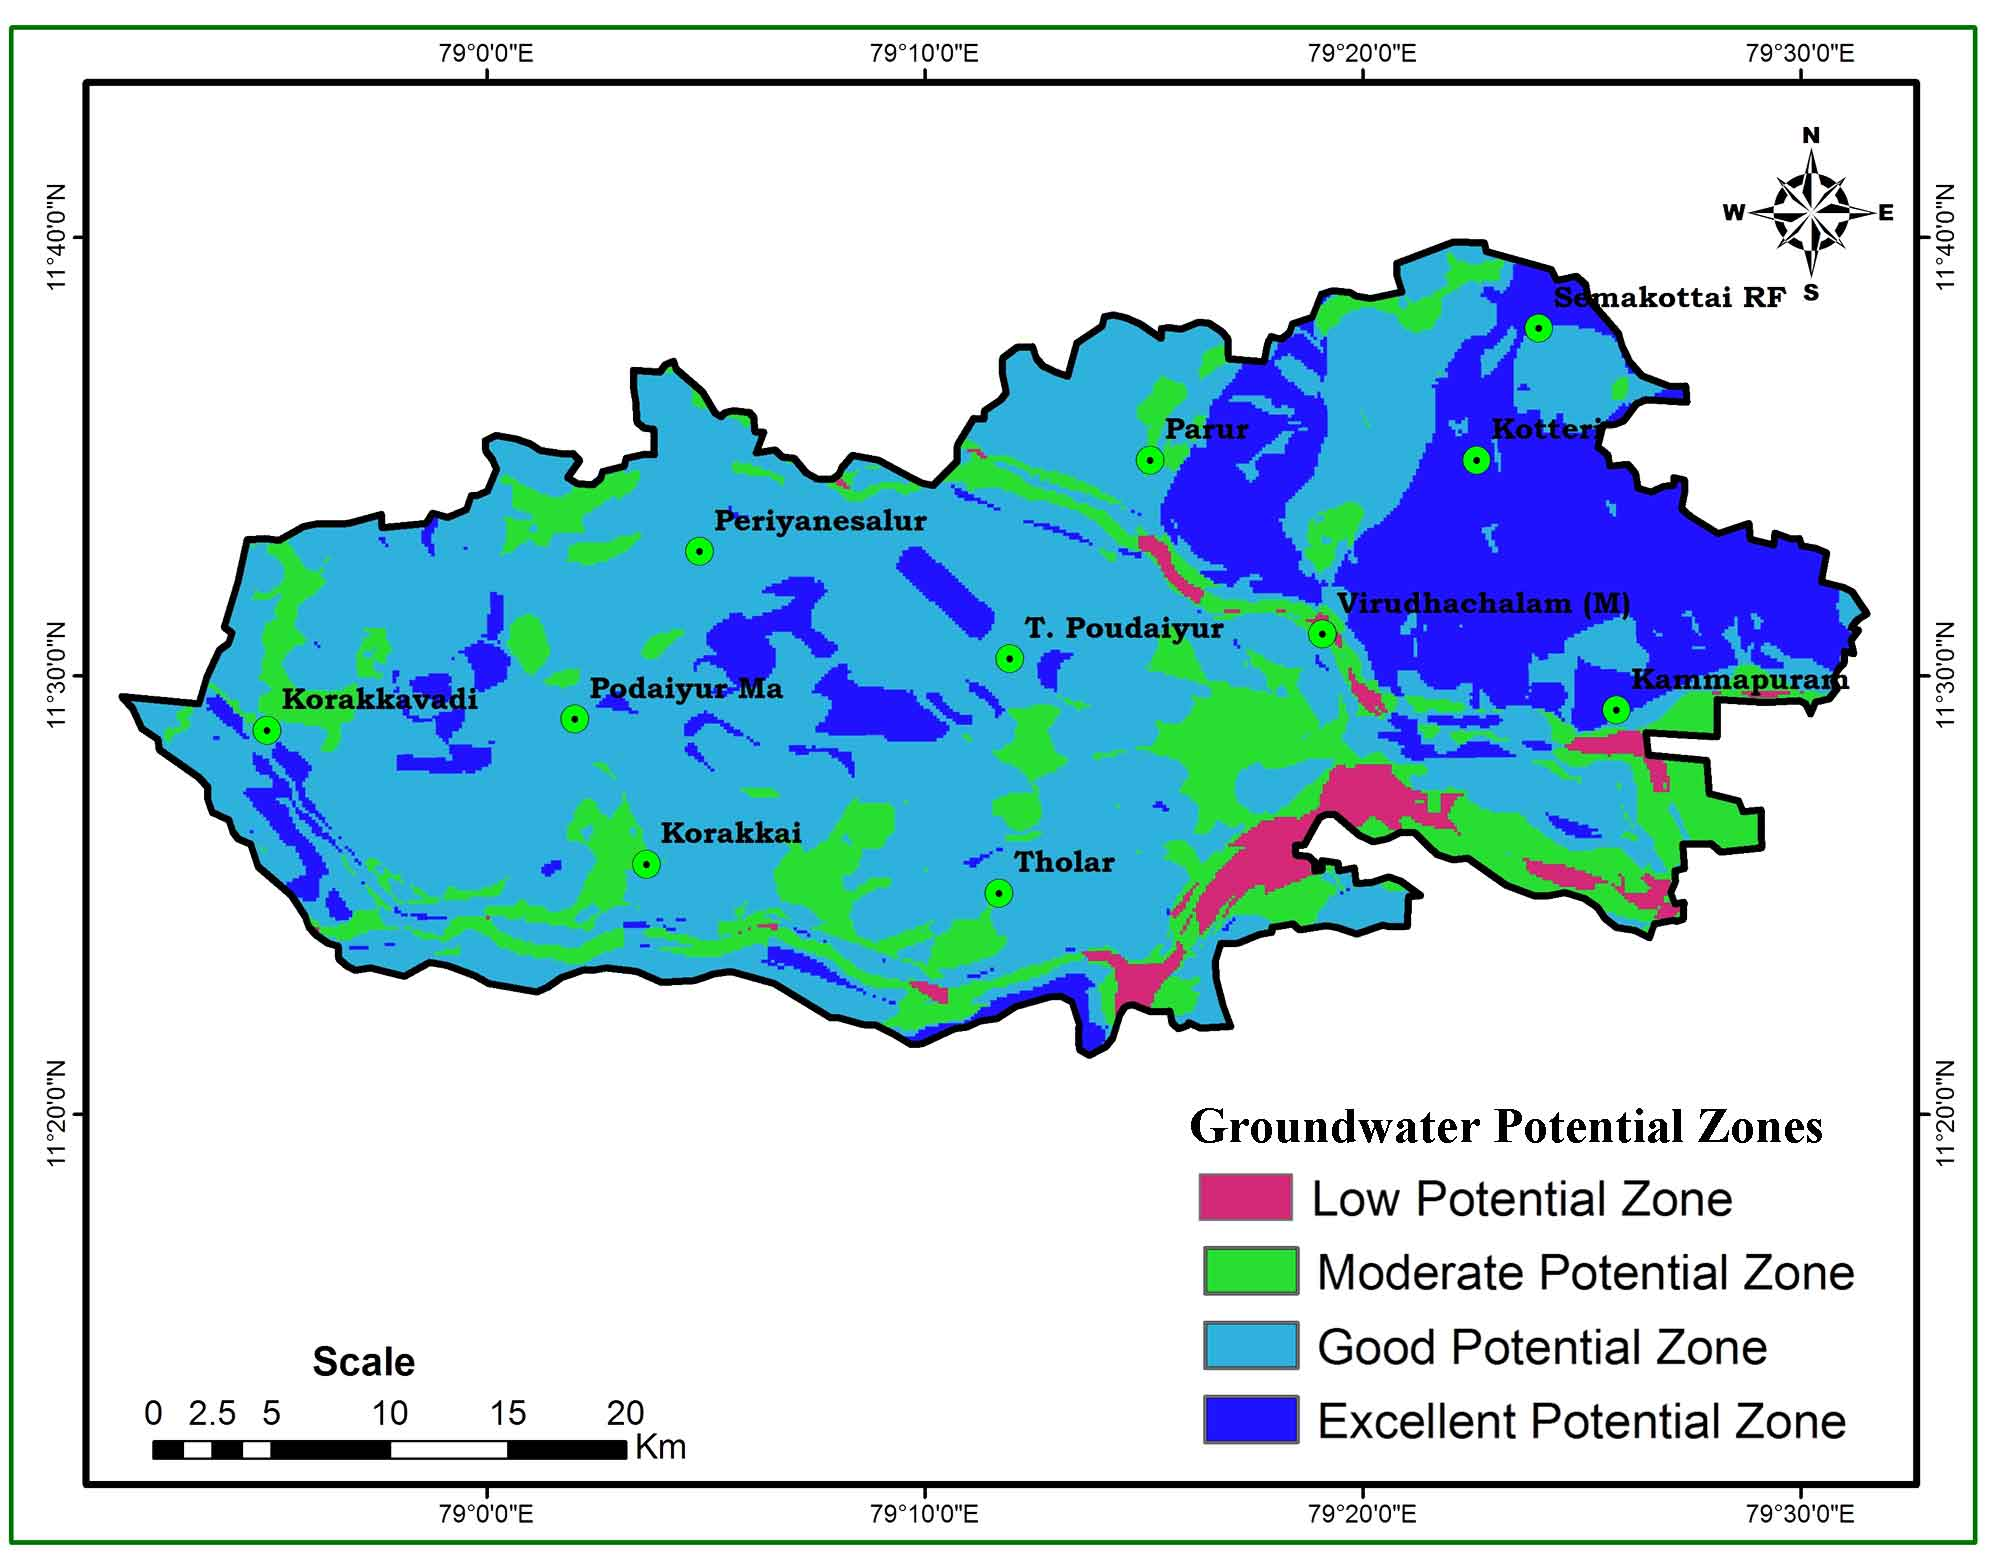 Groundwater Potentiality Mapping in Viruthachalam Taluk, Tamil Nadu, India: AHP and GIS Approaches